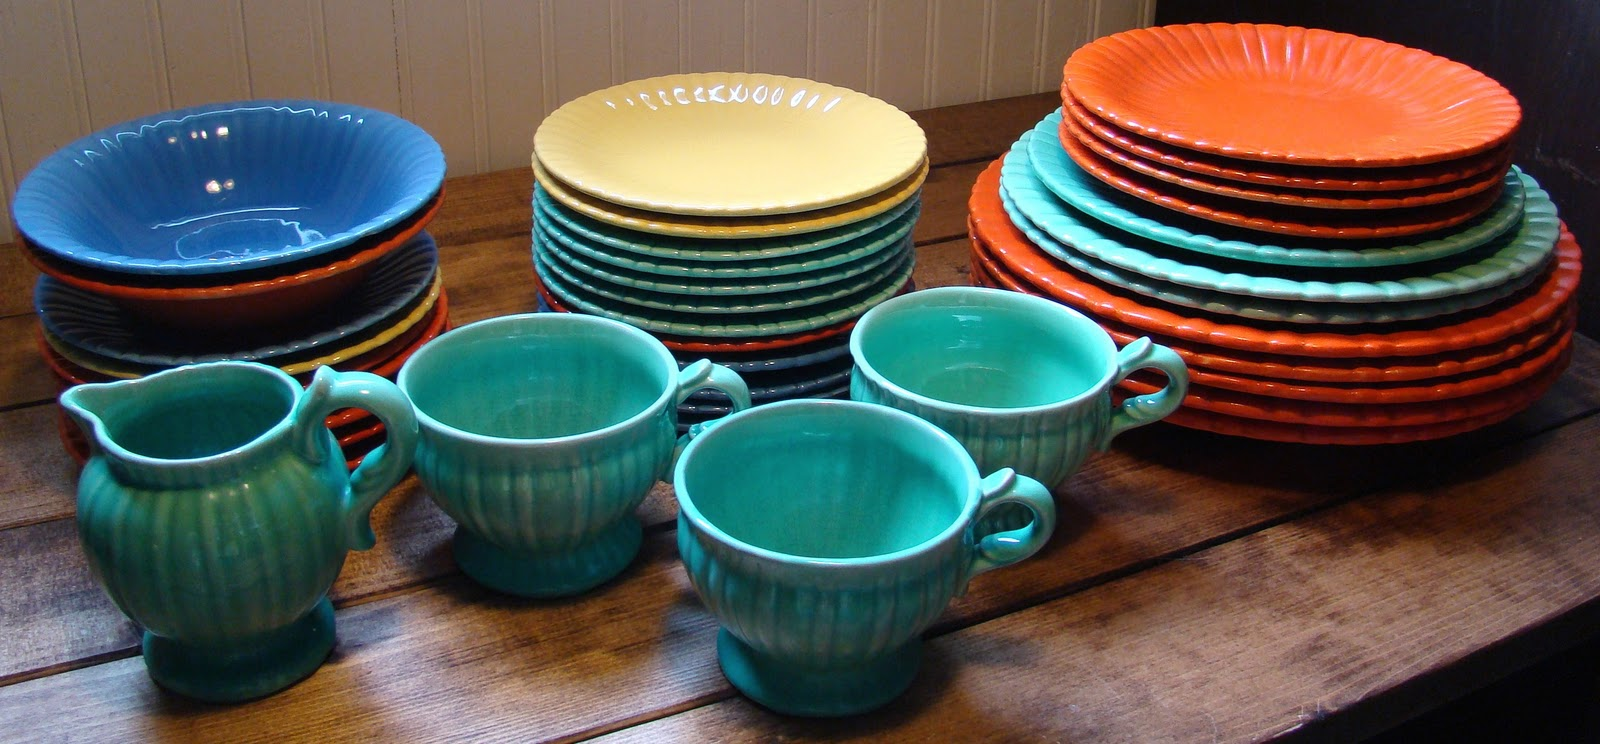 Stangl Pottery & thrifty vintage kitchen: Stangl Pottery